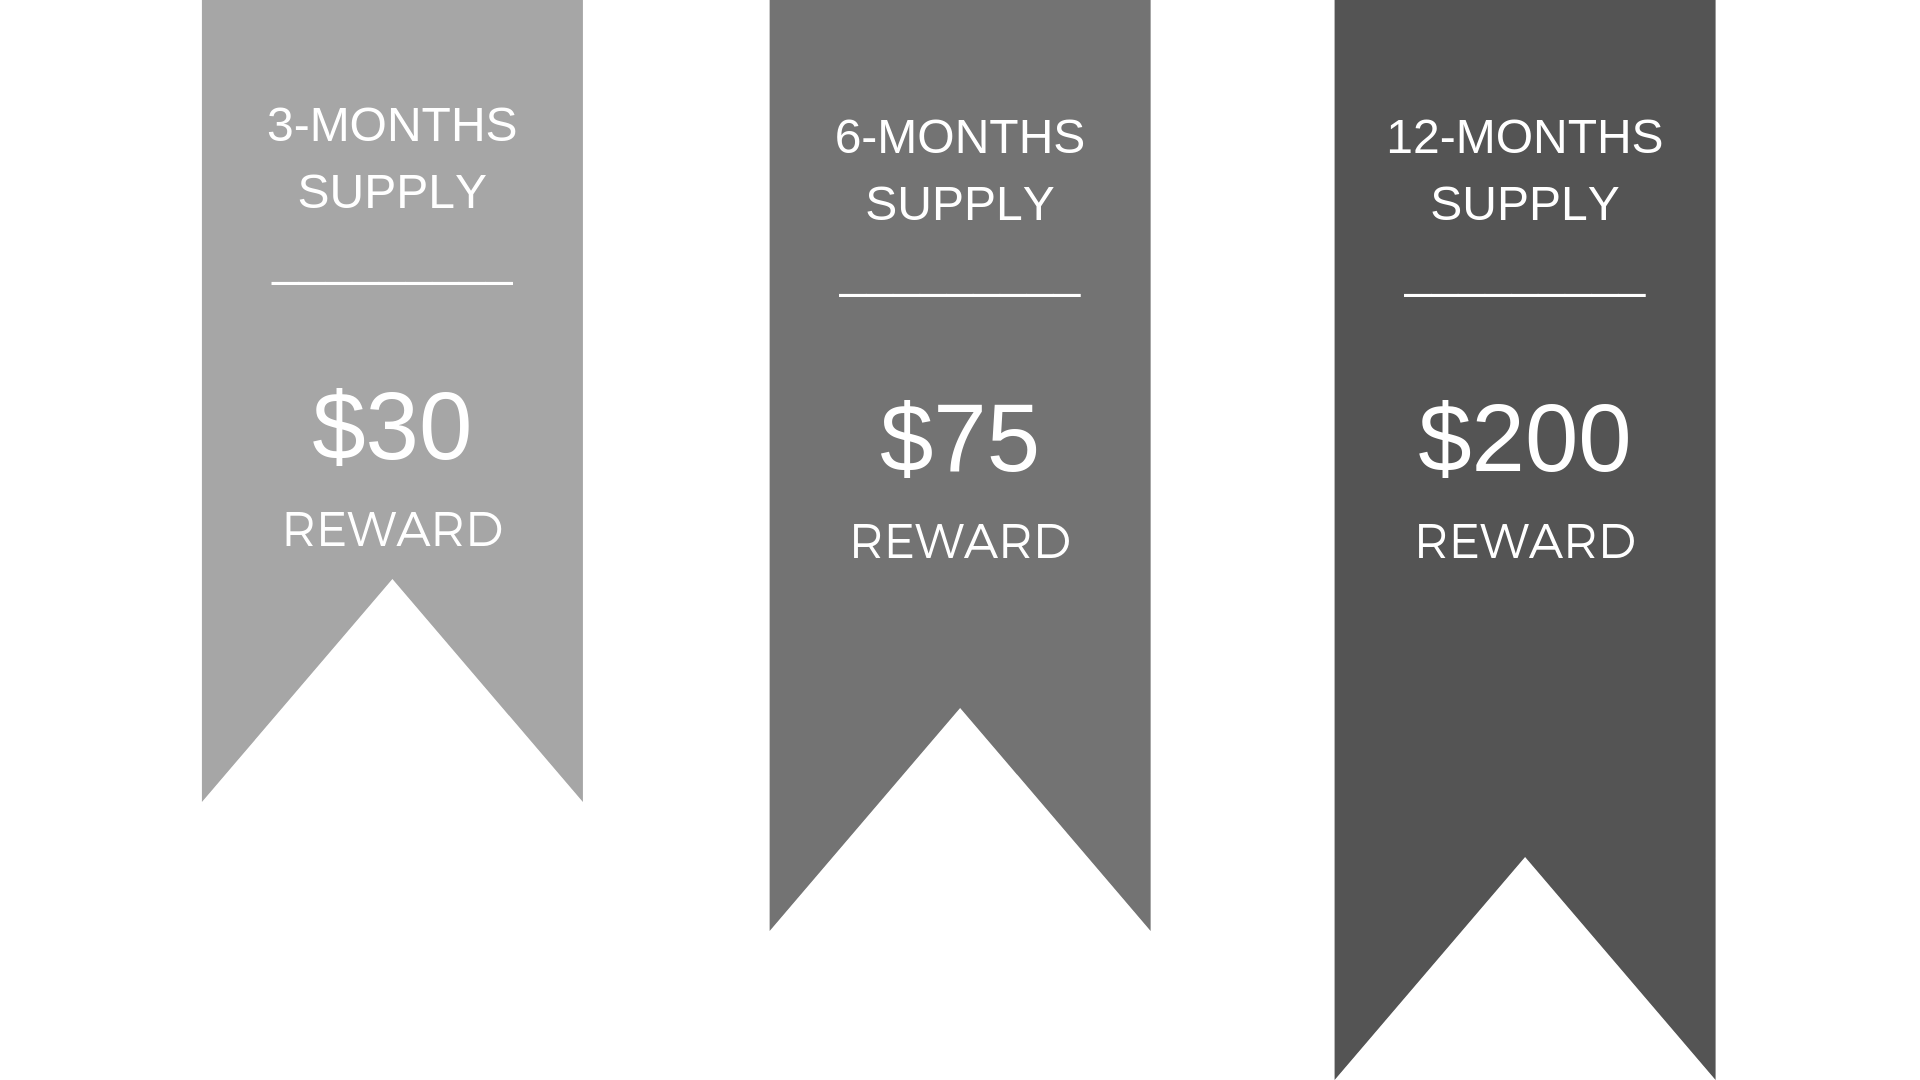 Dailies Total-1 rewards. $30 for 3-month supply, $75 for 6-month supply, $200 for 12-month supply